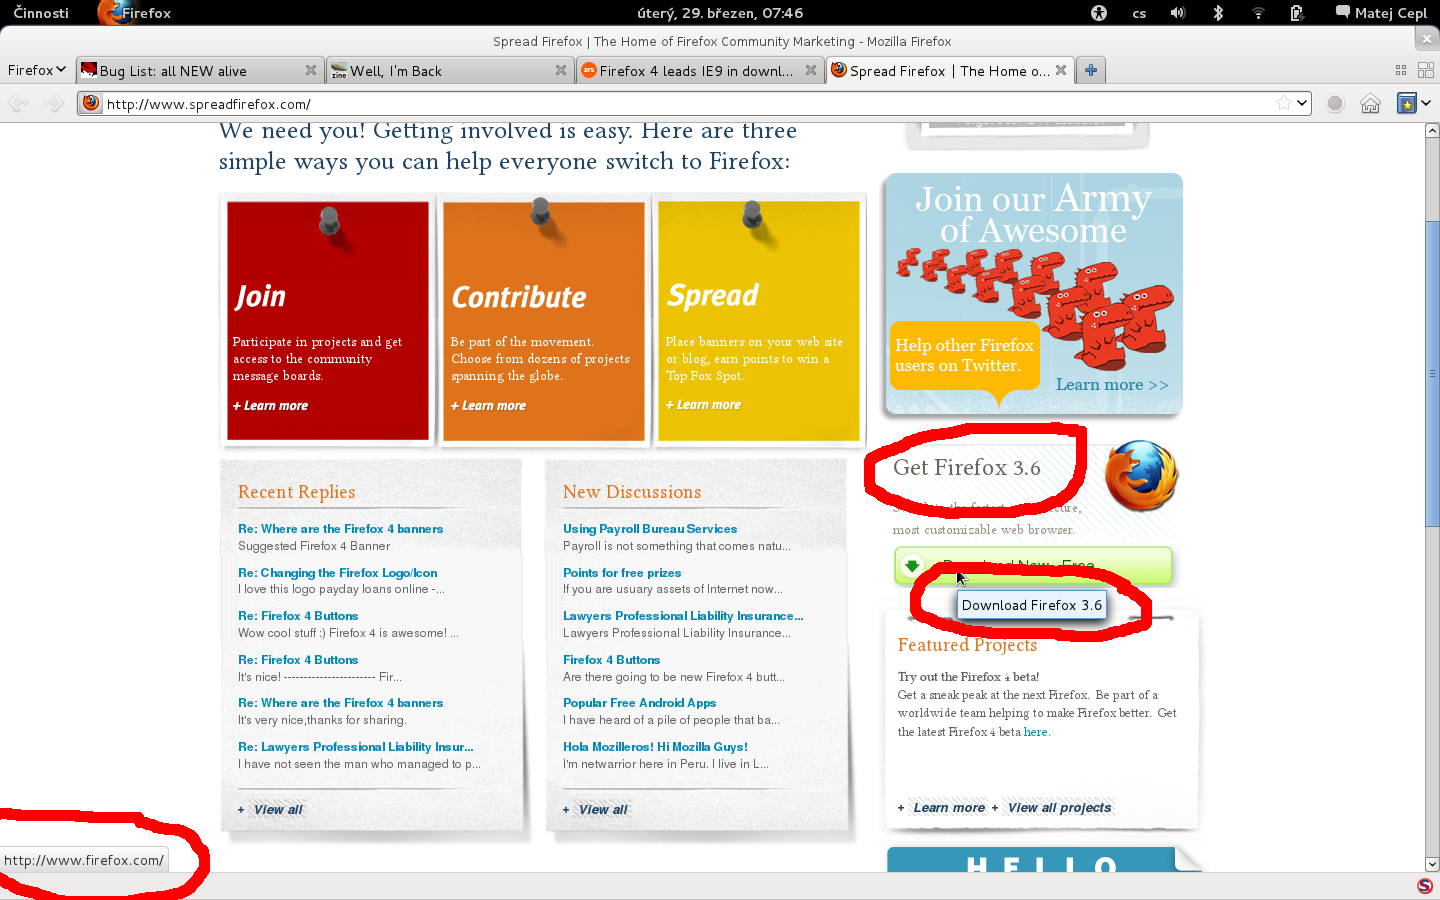 amusing mistake on the spreadfirefox page